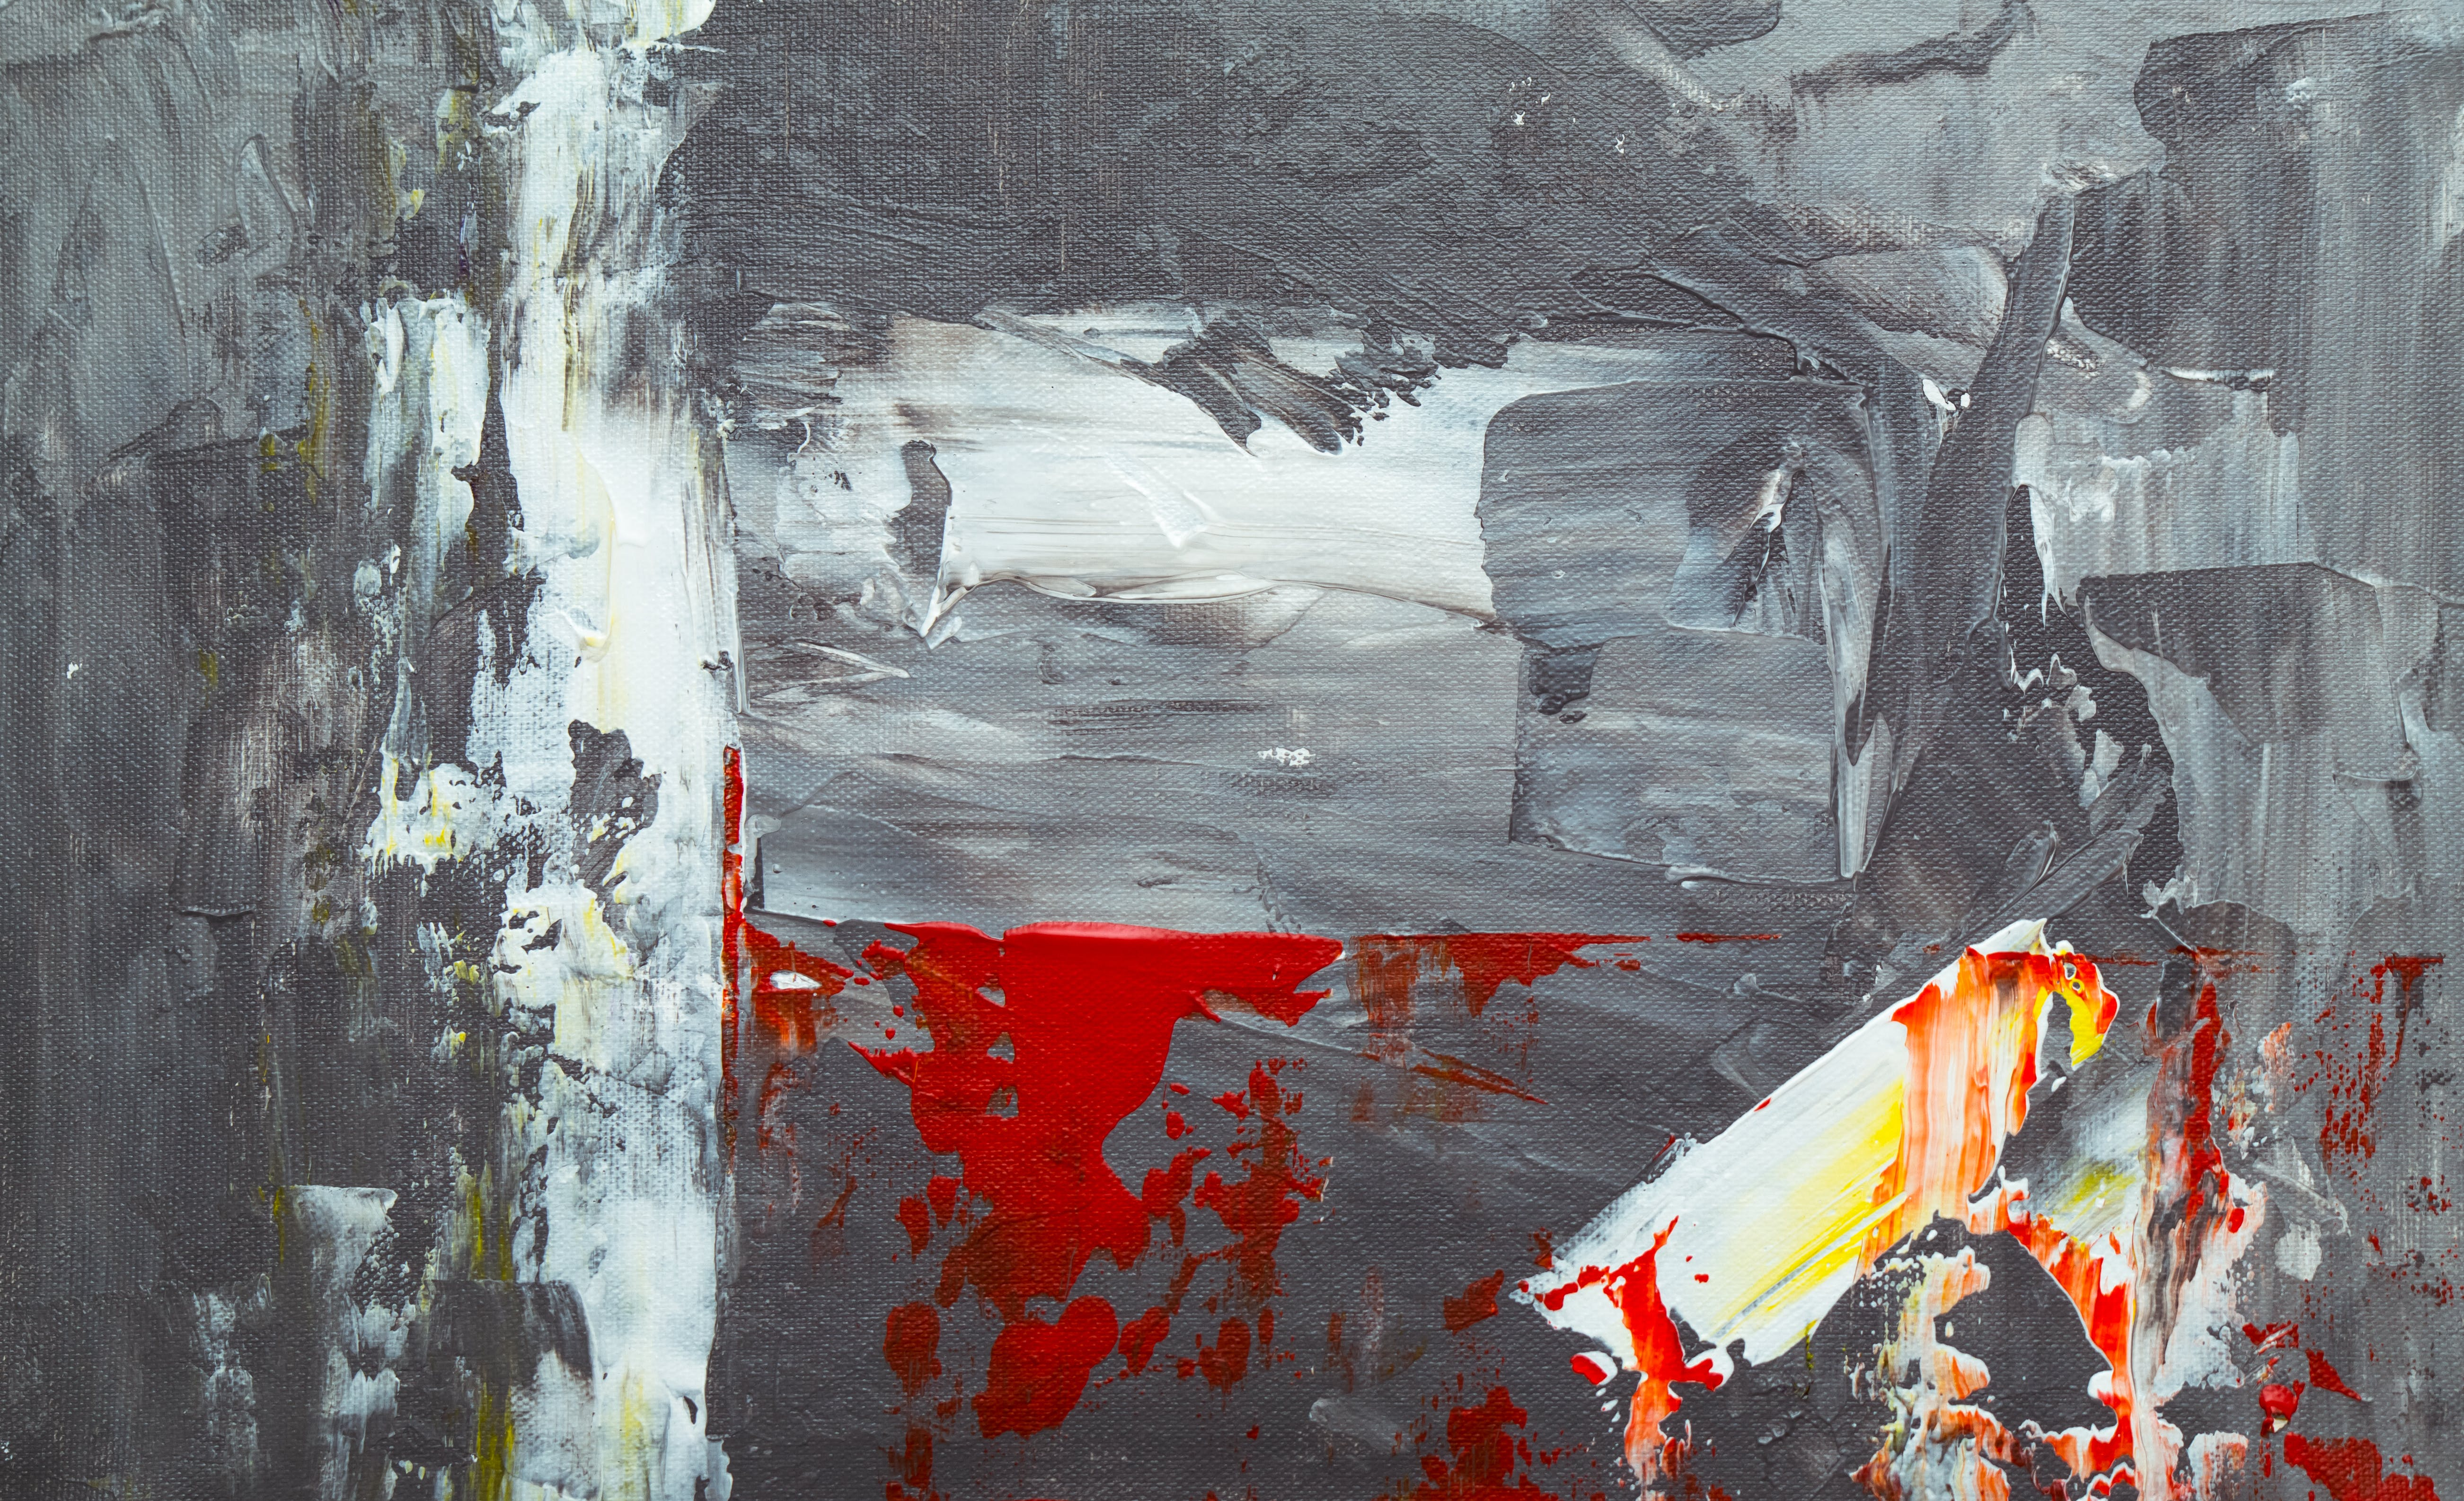 abstract, abstract expressionism, abstract painting